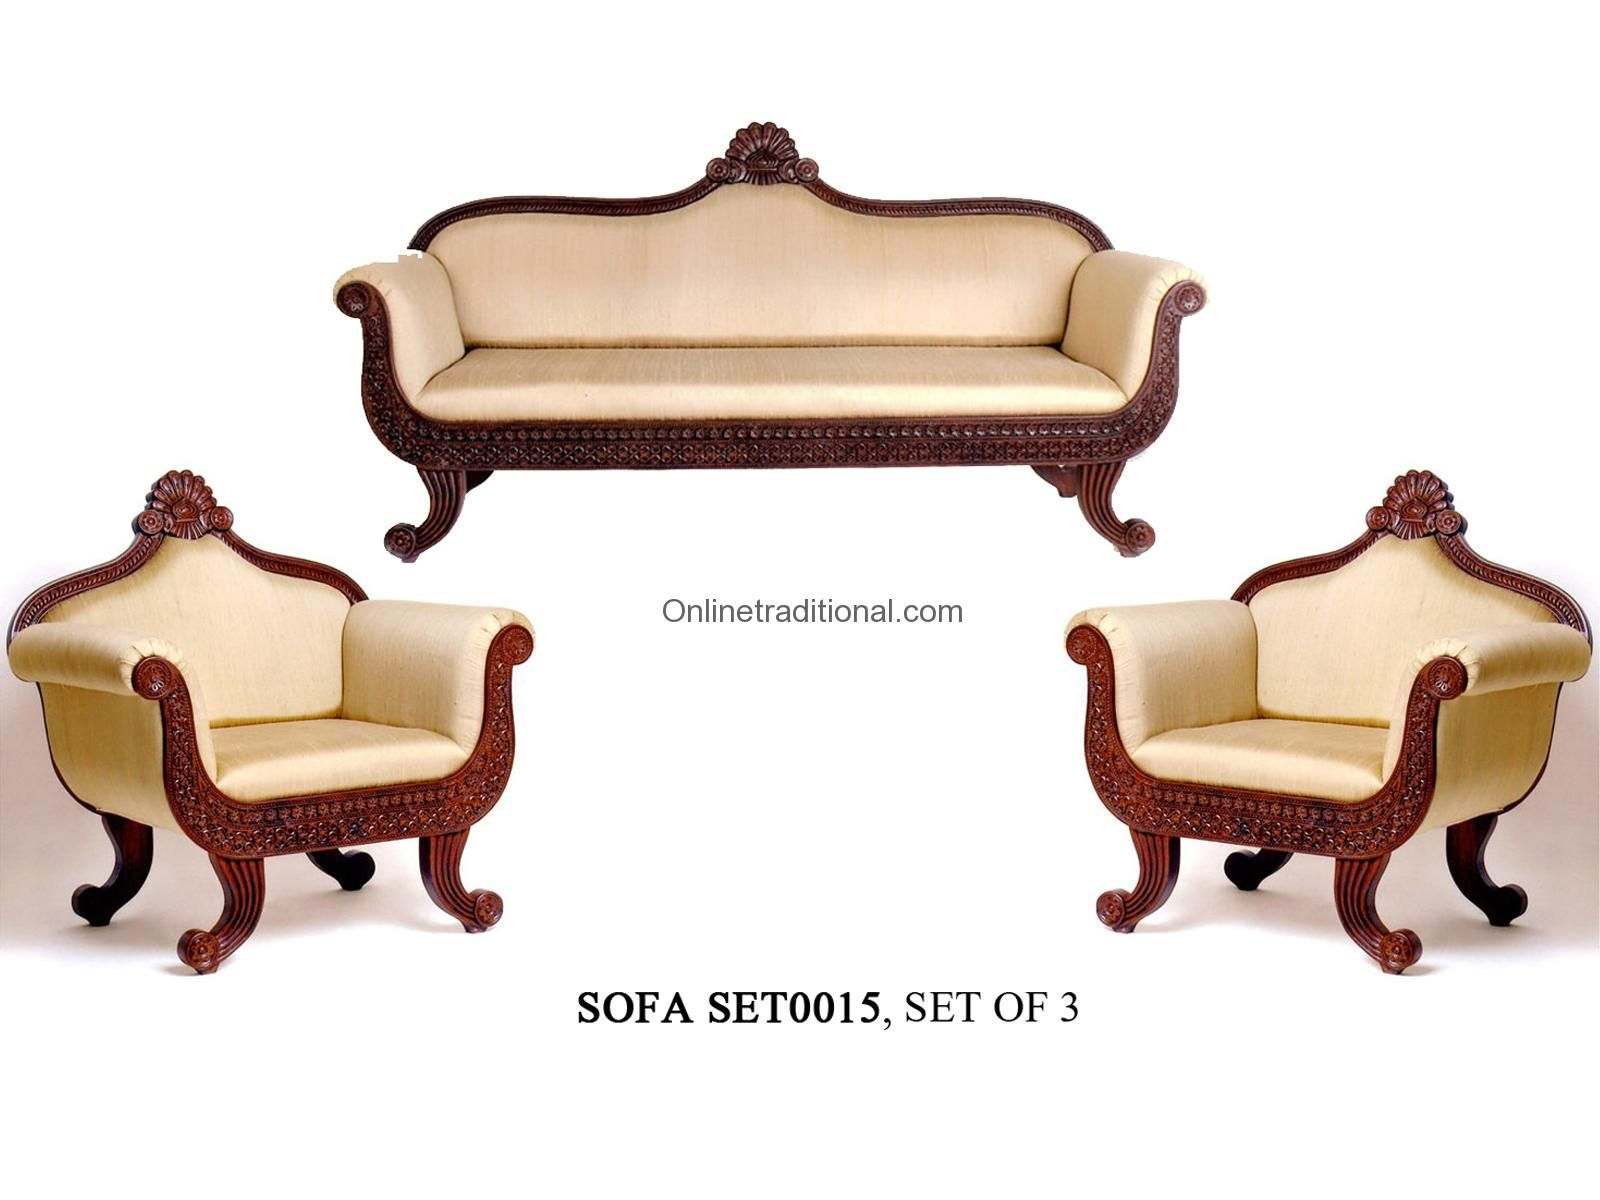 Sofa Olx Jodhpur Antique Craved Teak Wood Sofa Set Home Decor In 2019 Pinterest